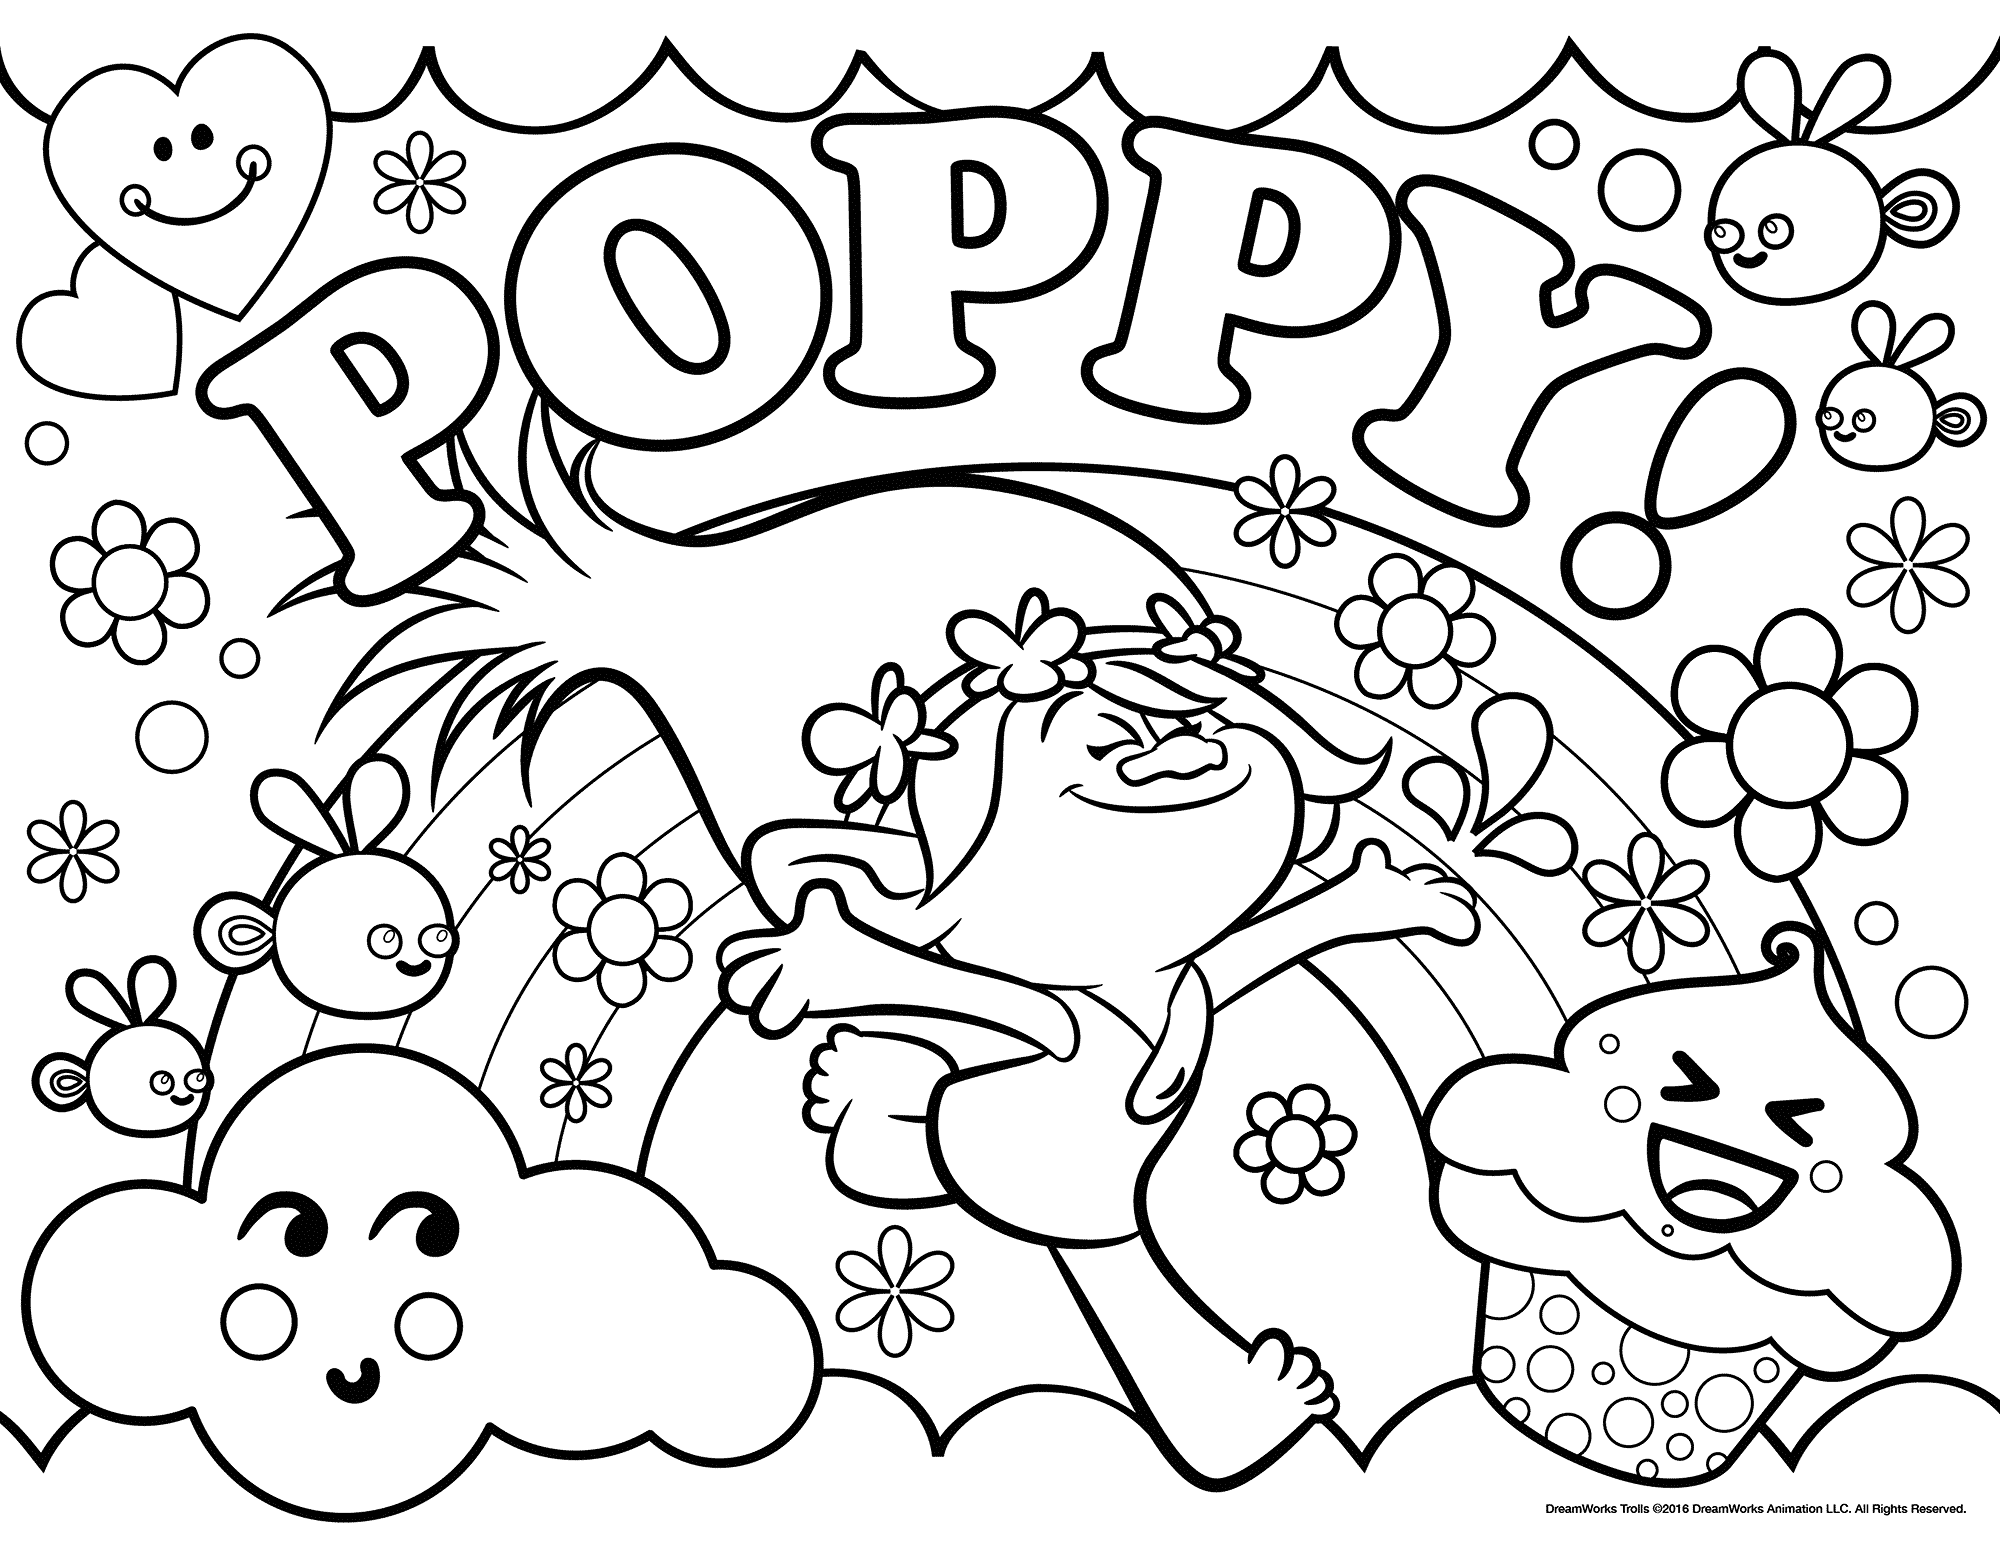 Paginas Para Colorear Gratis: Best Coloring Pages For Kids